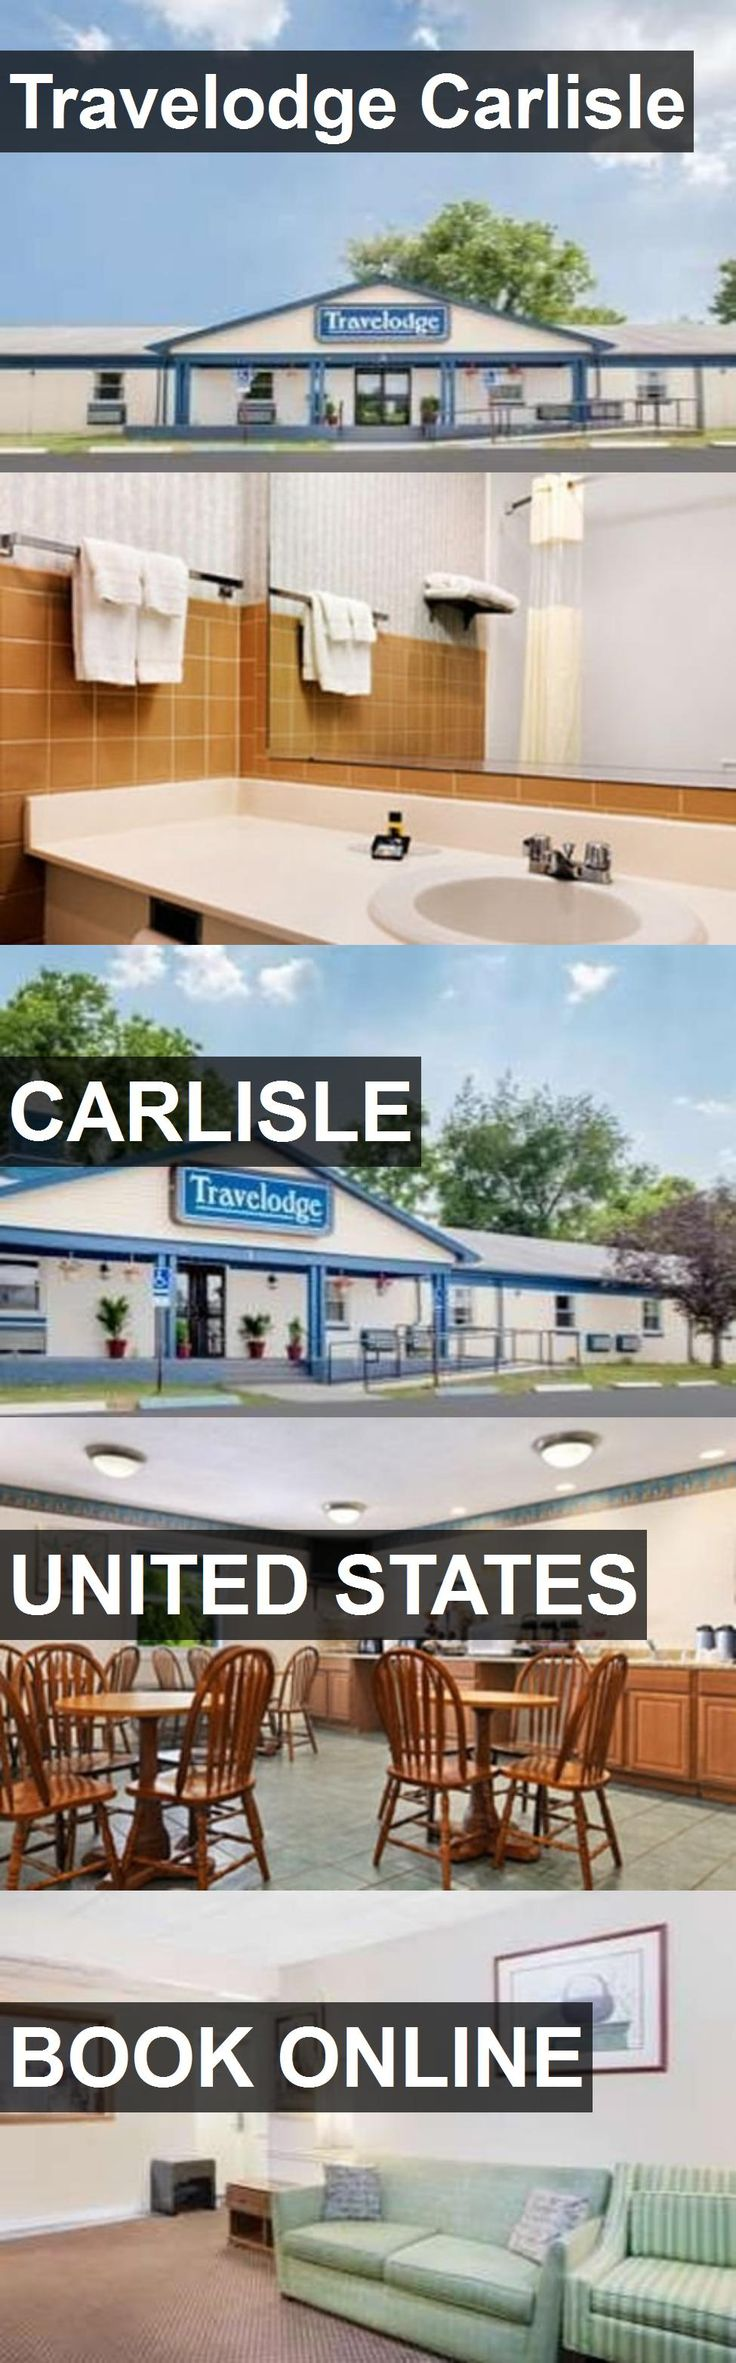 Hotel Travelodge Carlisle in Carlisle, United States. For more information, photos, reviews and best prices please follow the link. #UnitedStates #Carlisle #travel #vacation #hotel